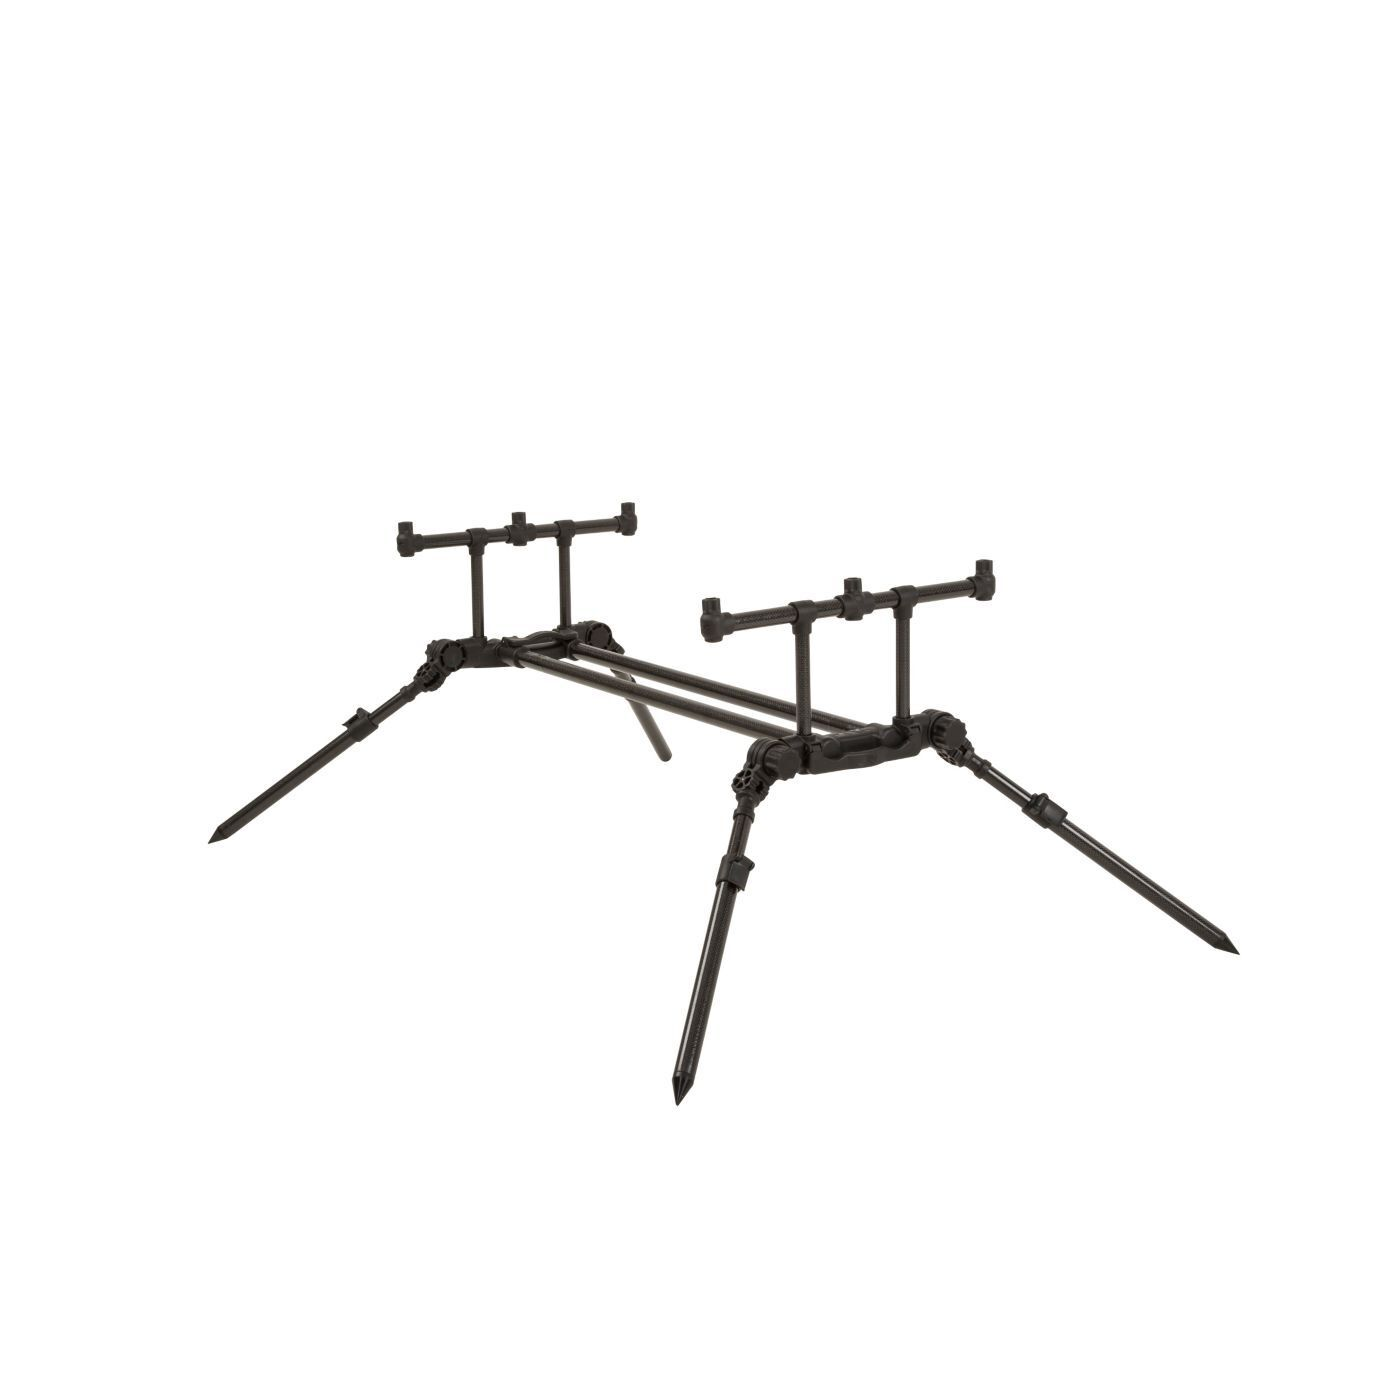 JRC Cocoon Carbon Rod Pod Brand New 2018 - Free Delivery